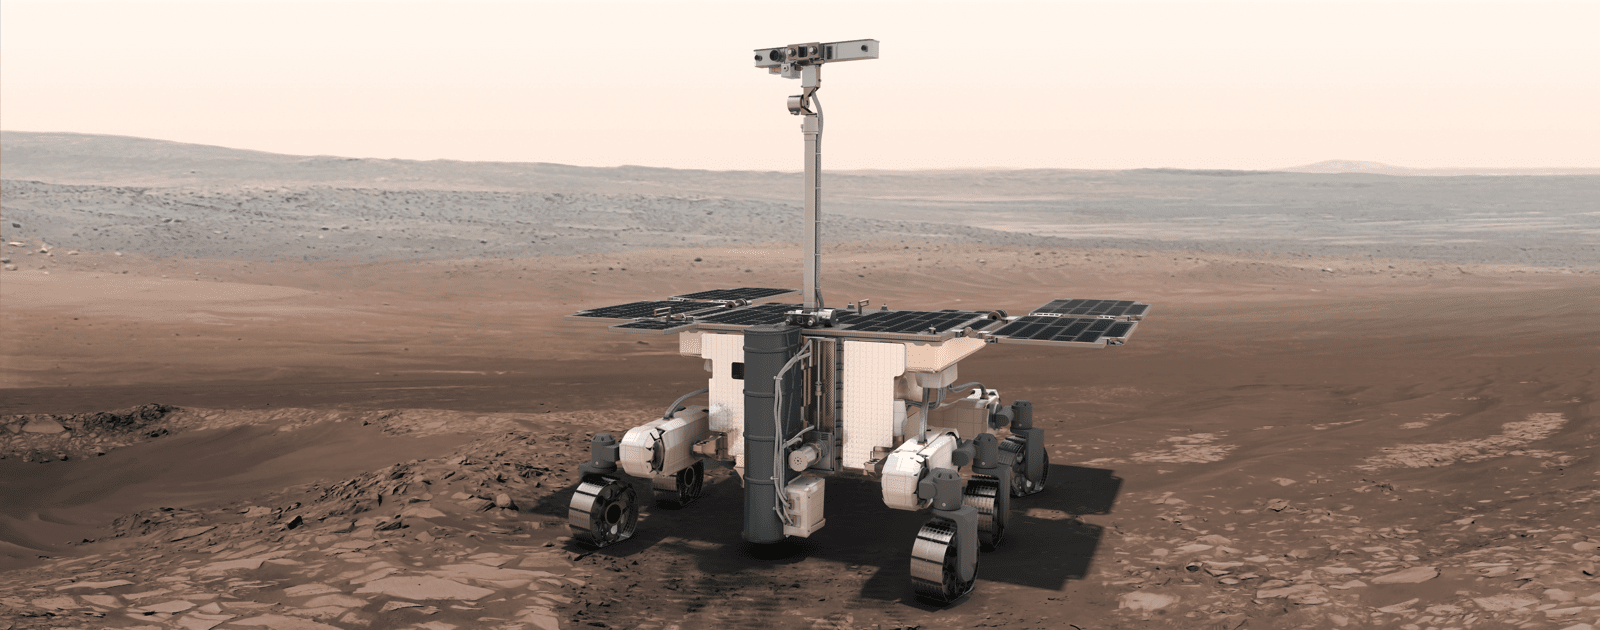 Want to Name the European Rover That Will Go to Mars in 2020?